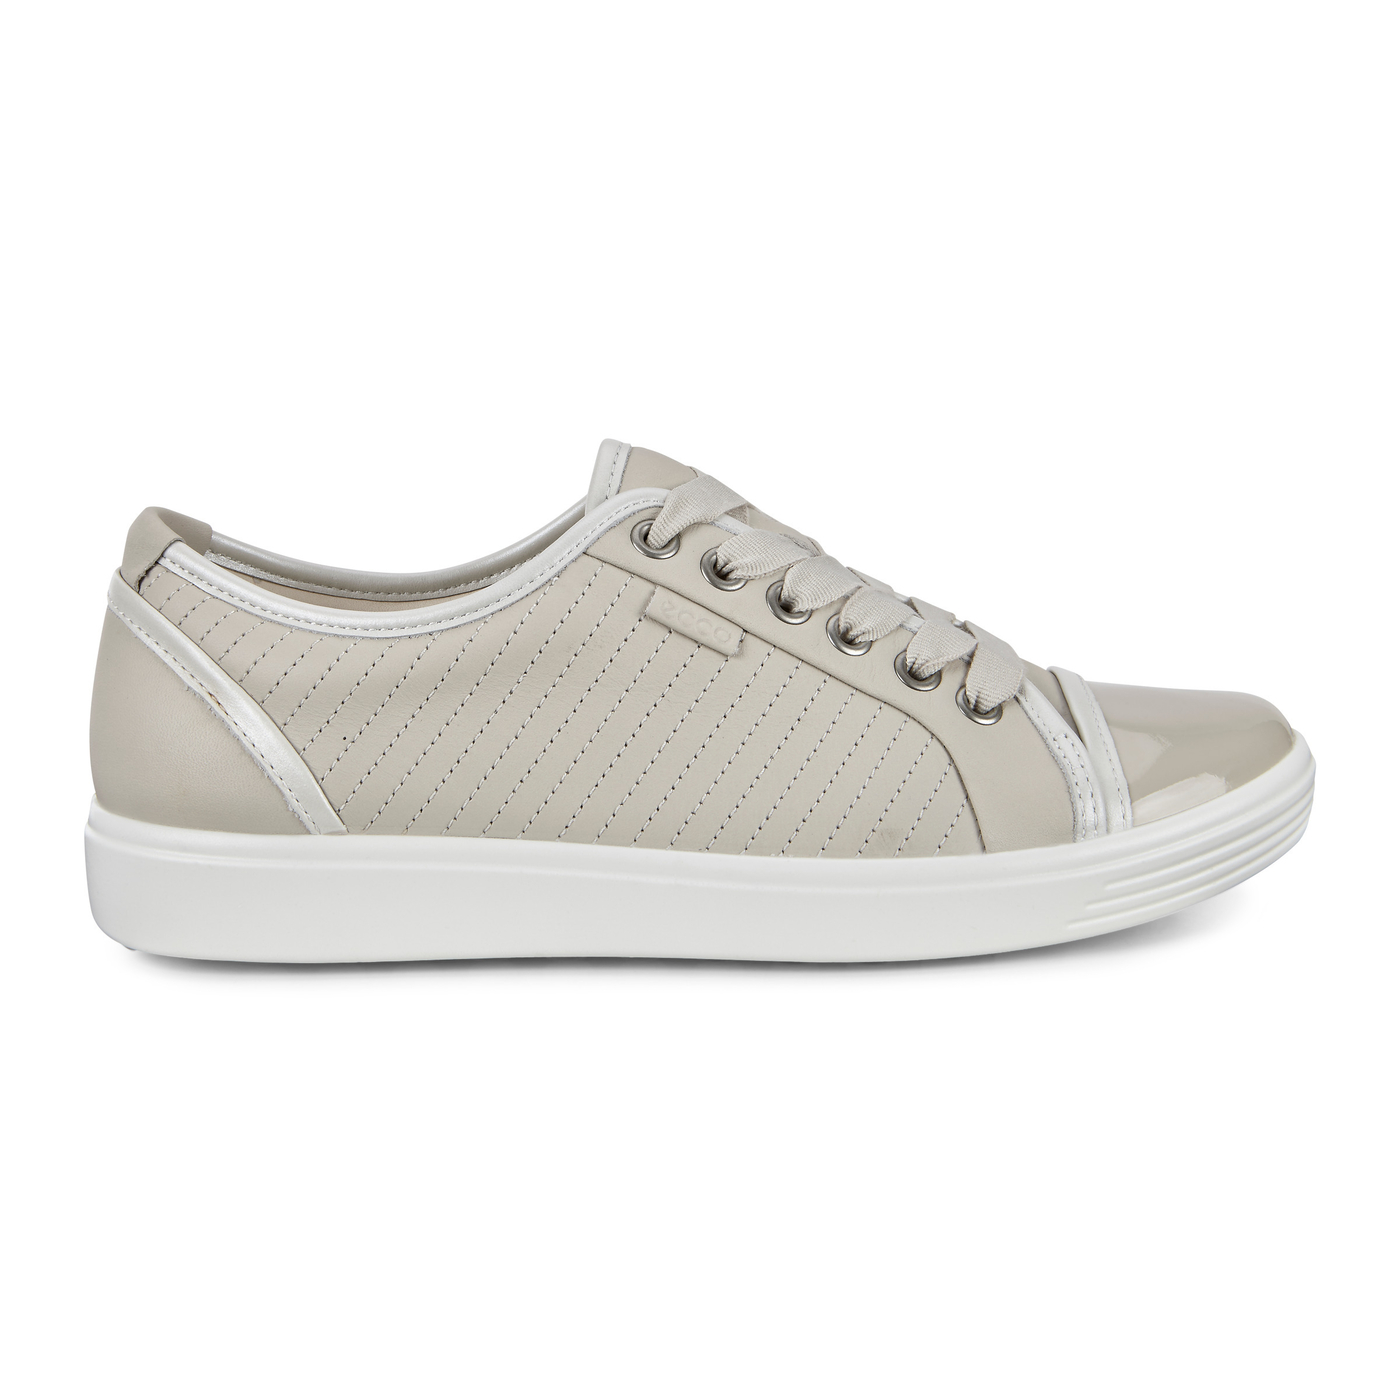 ECCO Women's Soft 7 Cap Toe